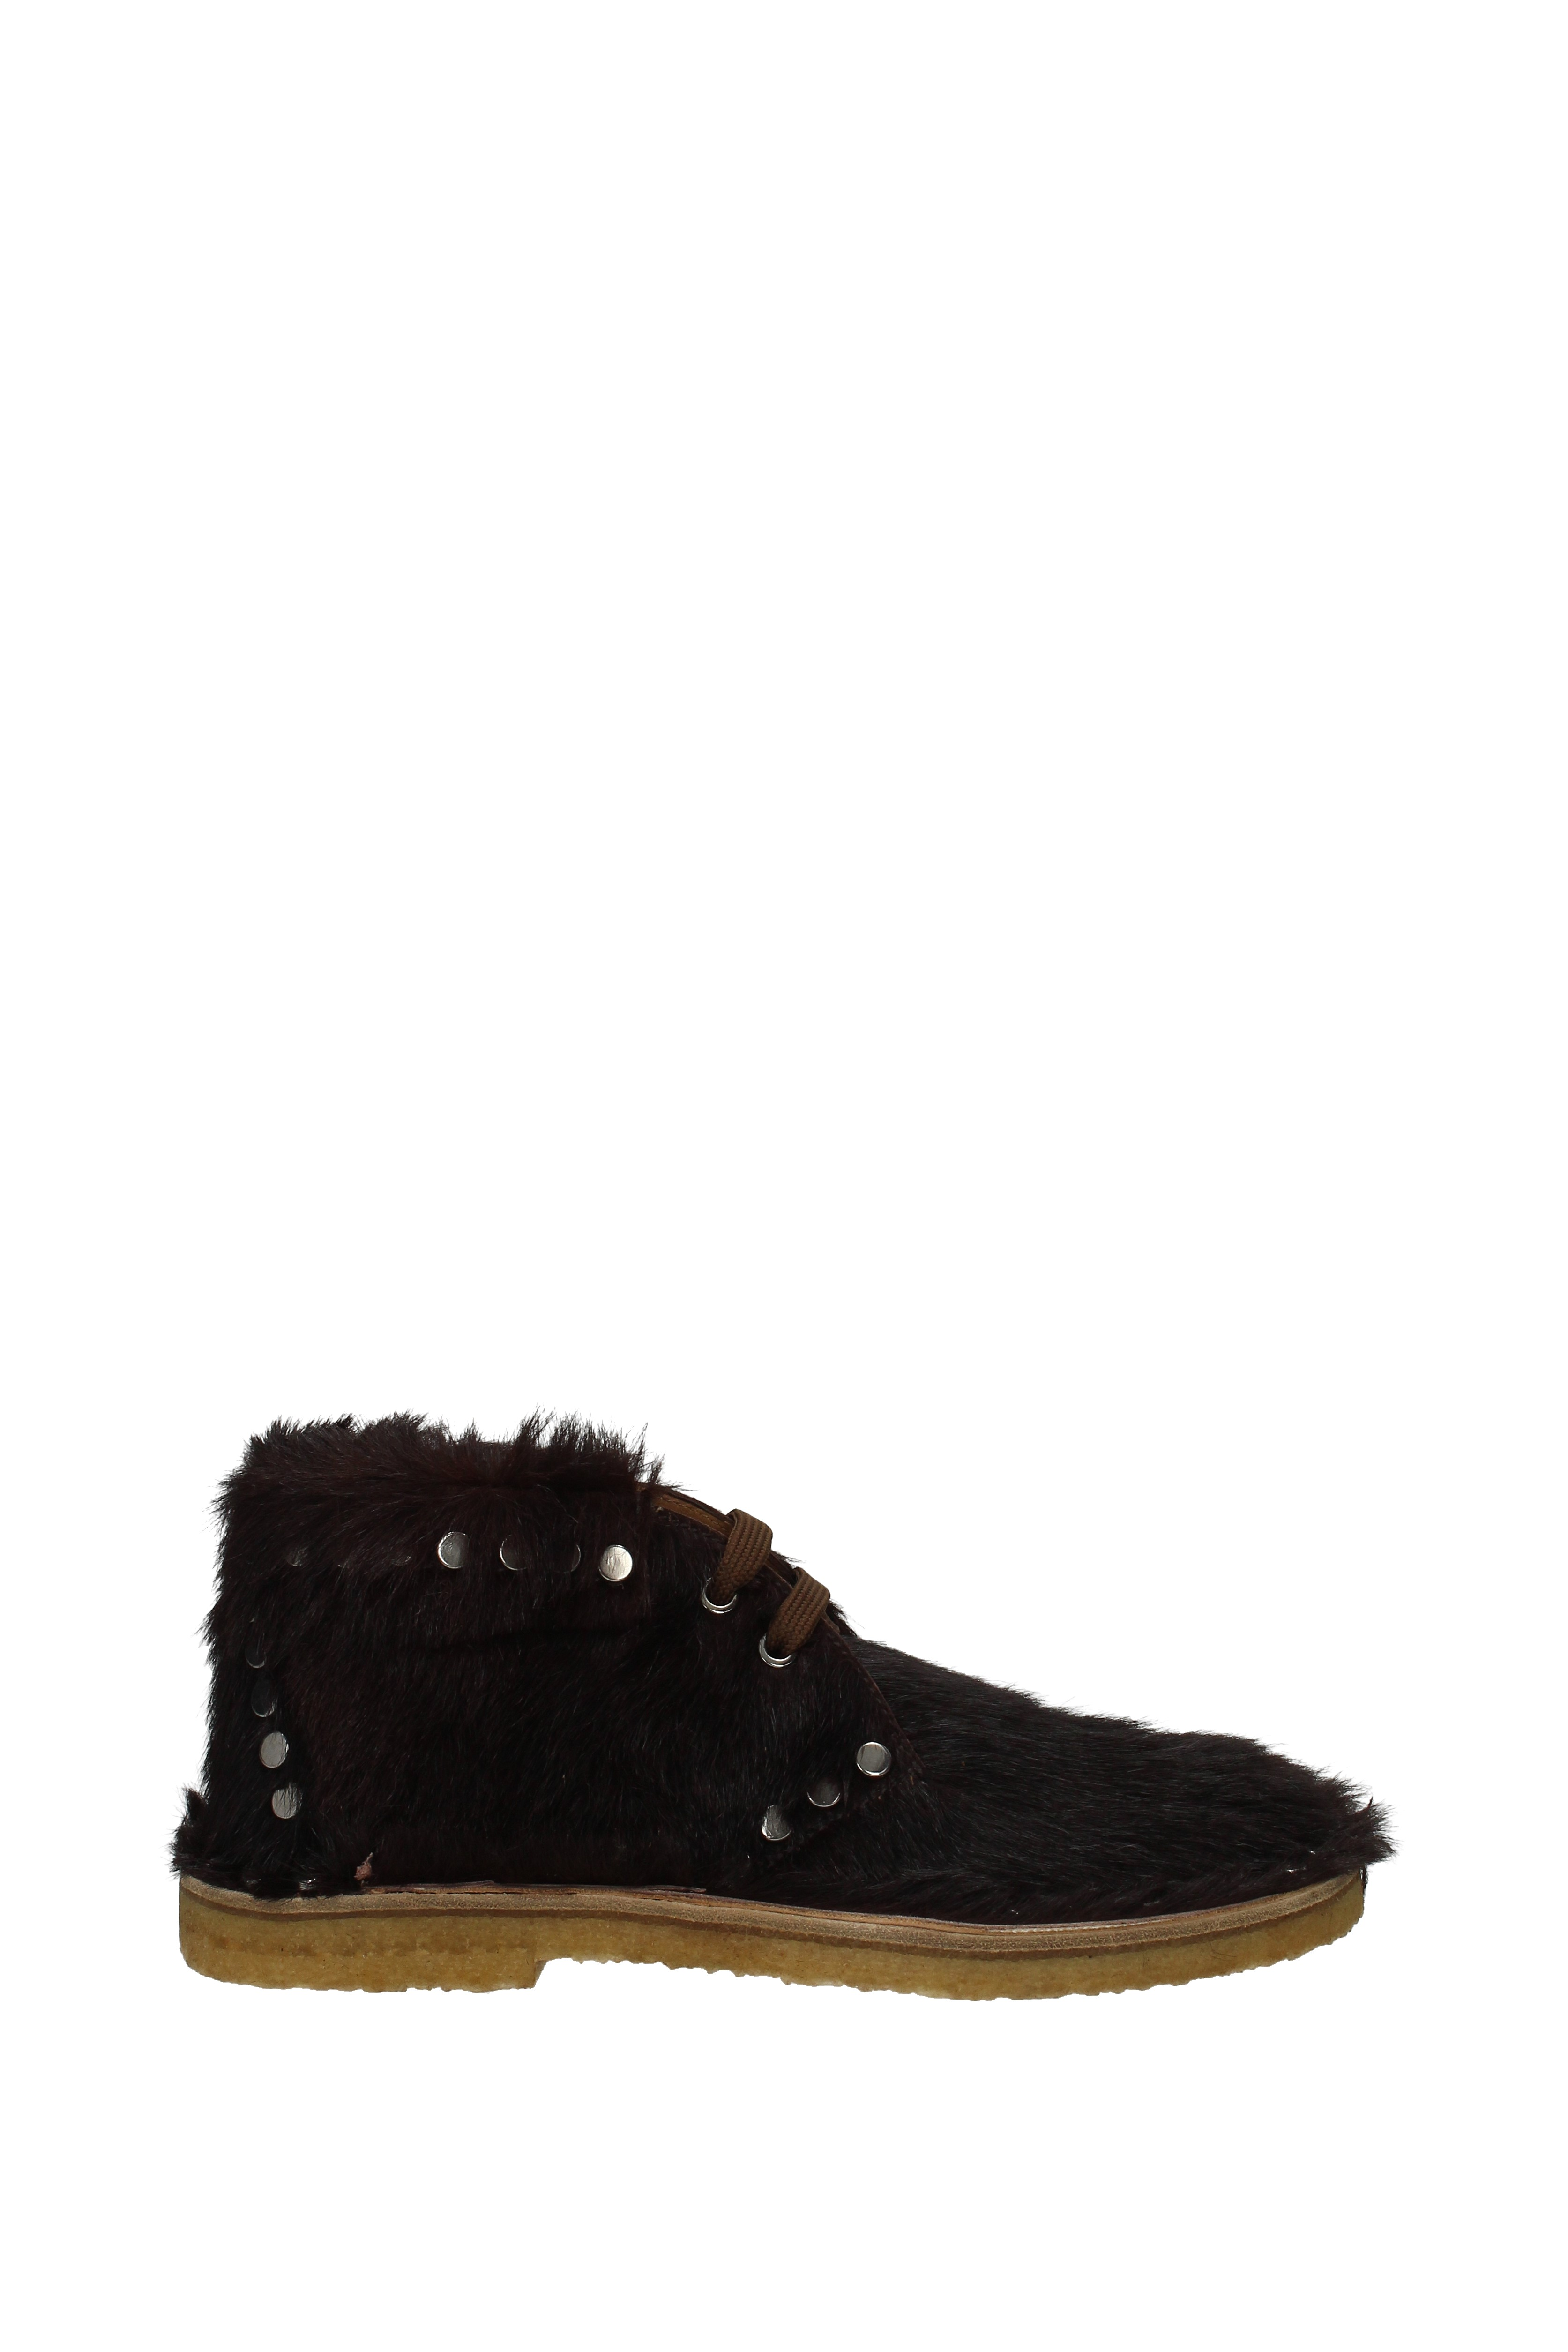 Stiefeletten Stiefeletten Stiefeletten Prada Damen - Ponyfell (1T899H) 0f0c9c